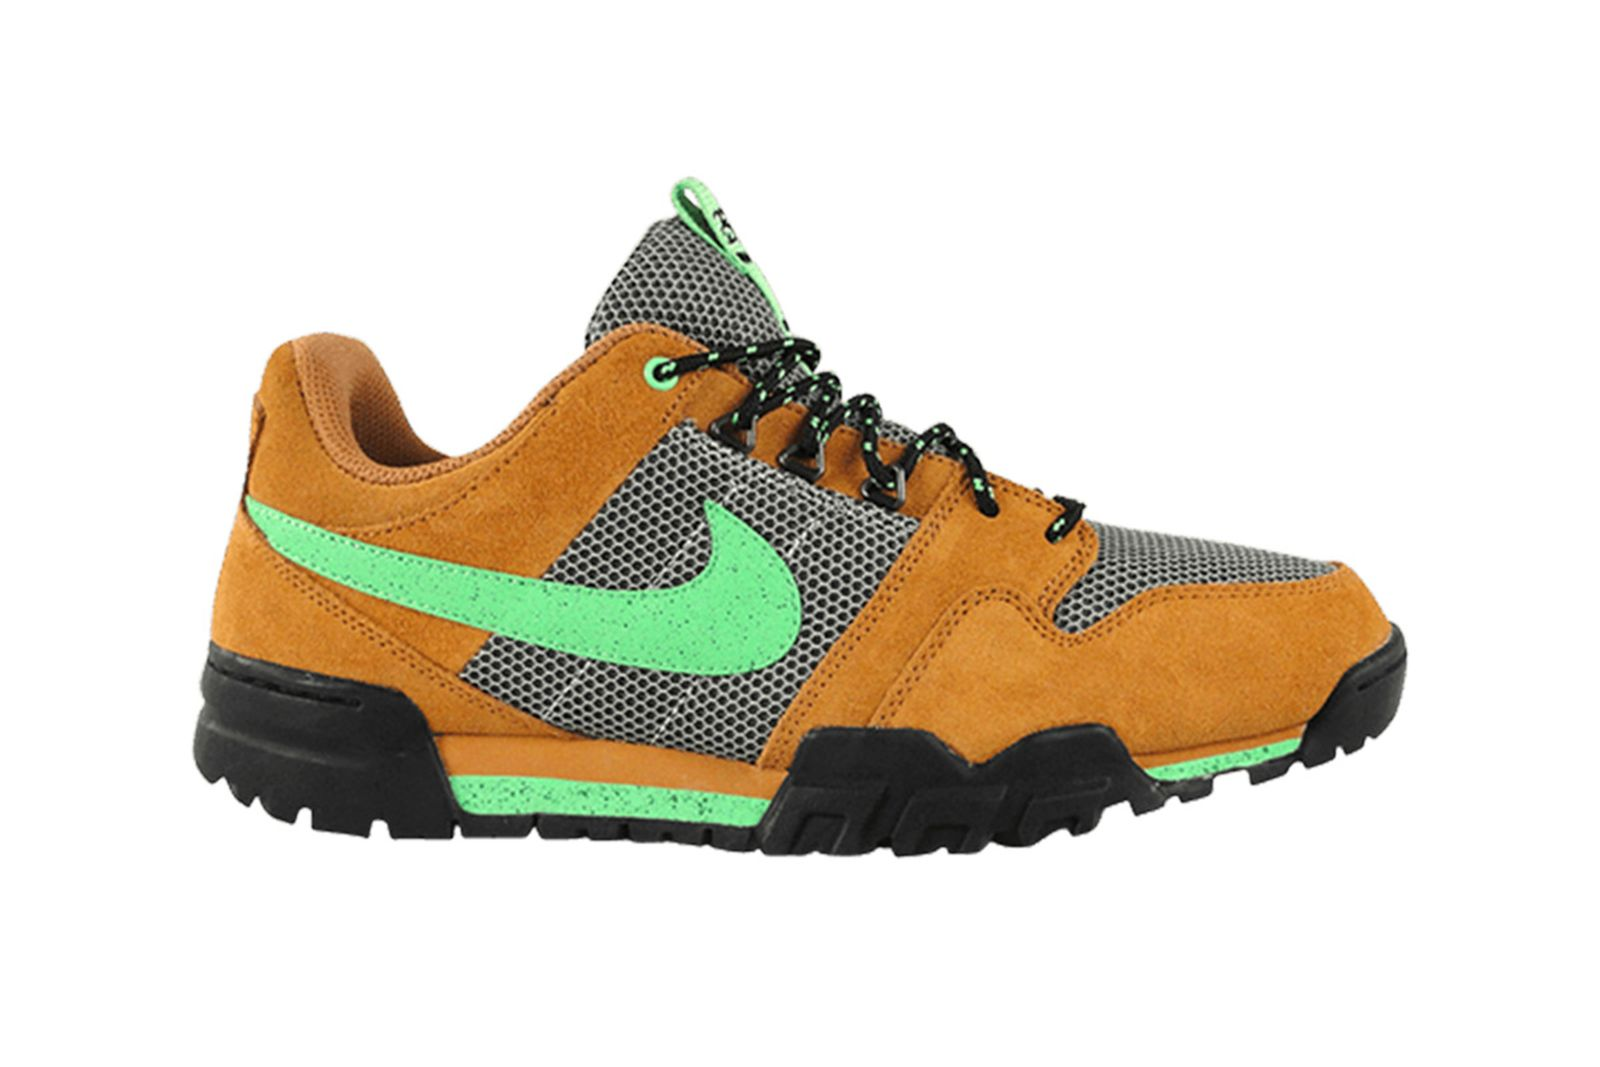 stussy-nike-sneaker-collaboration-roundup-new-001